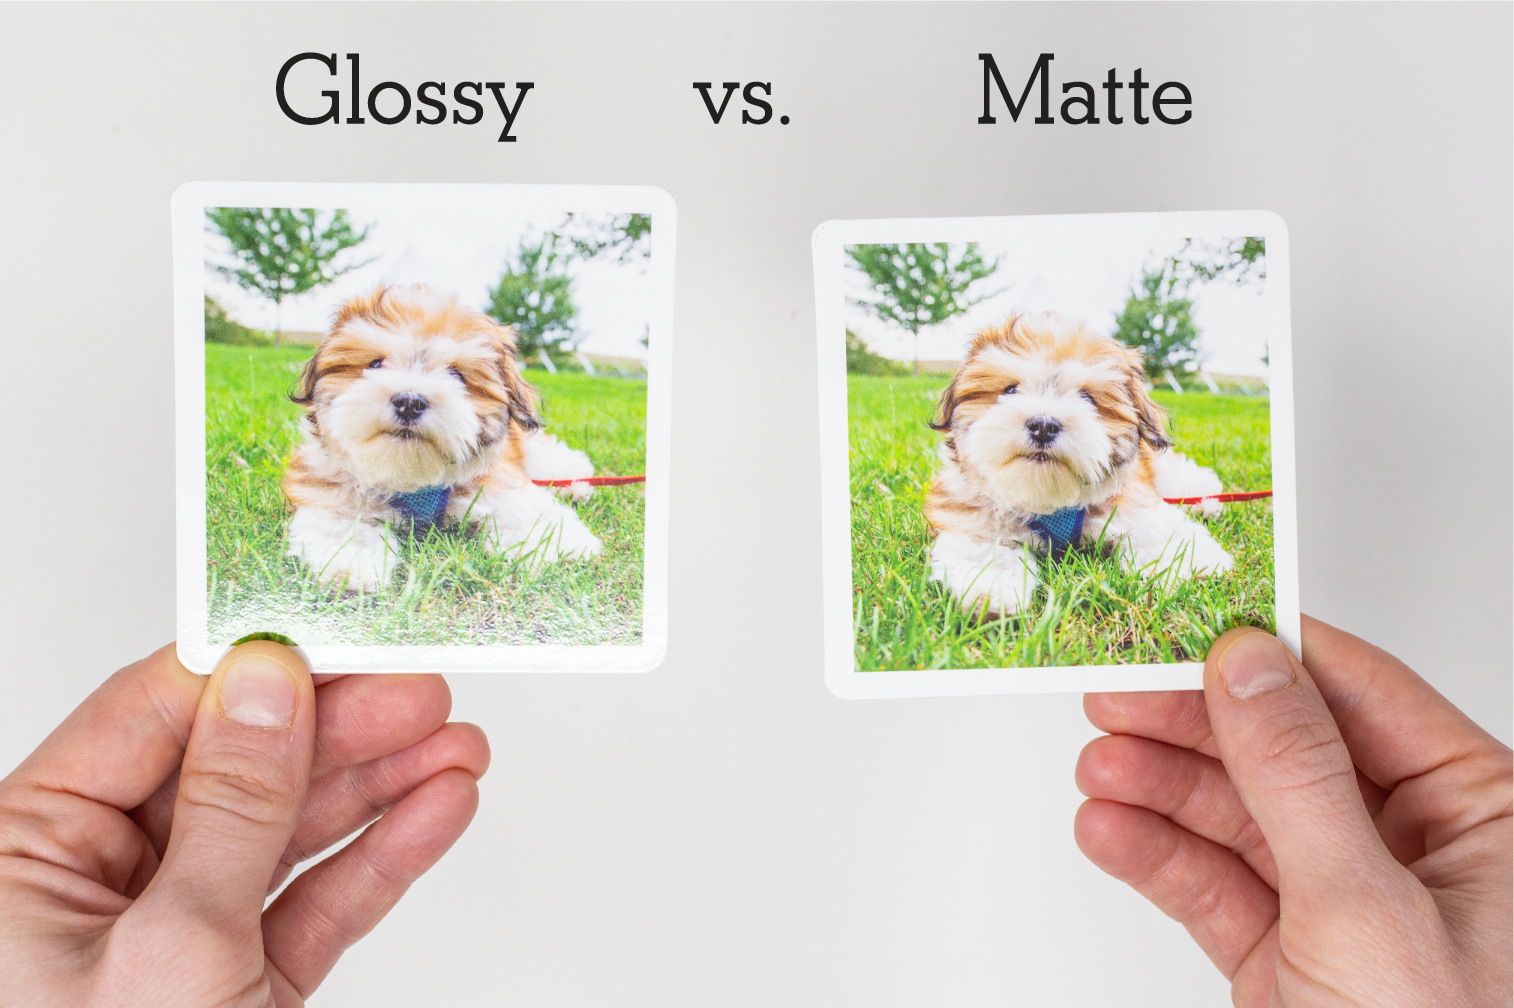 Glossy vs. Matte Finish Photo Memory Game